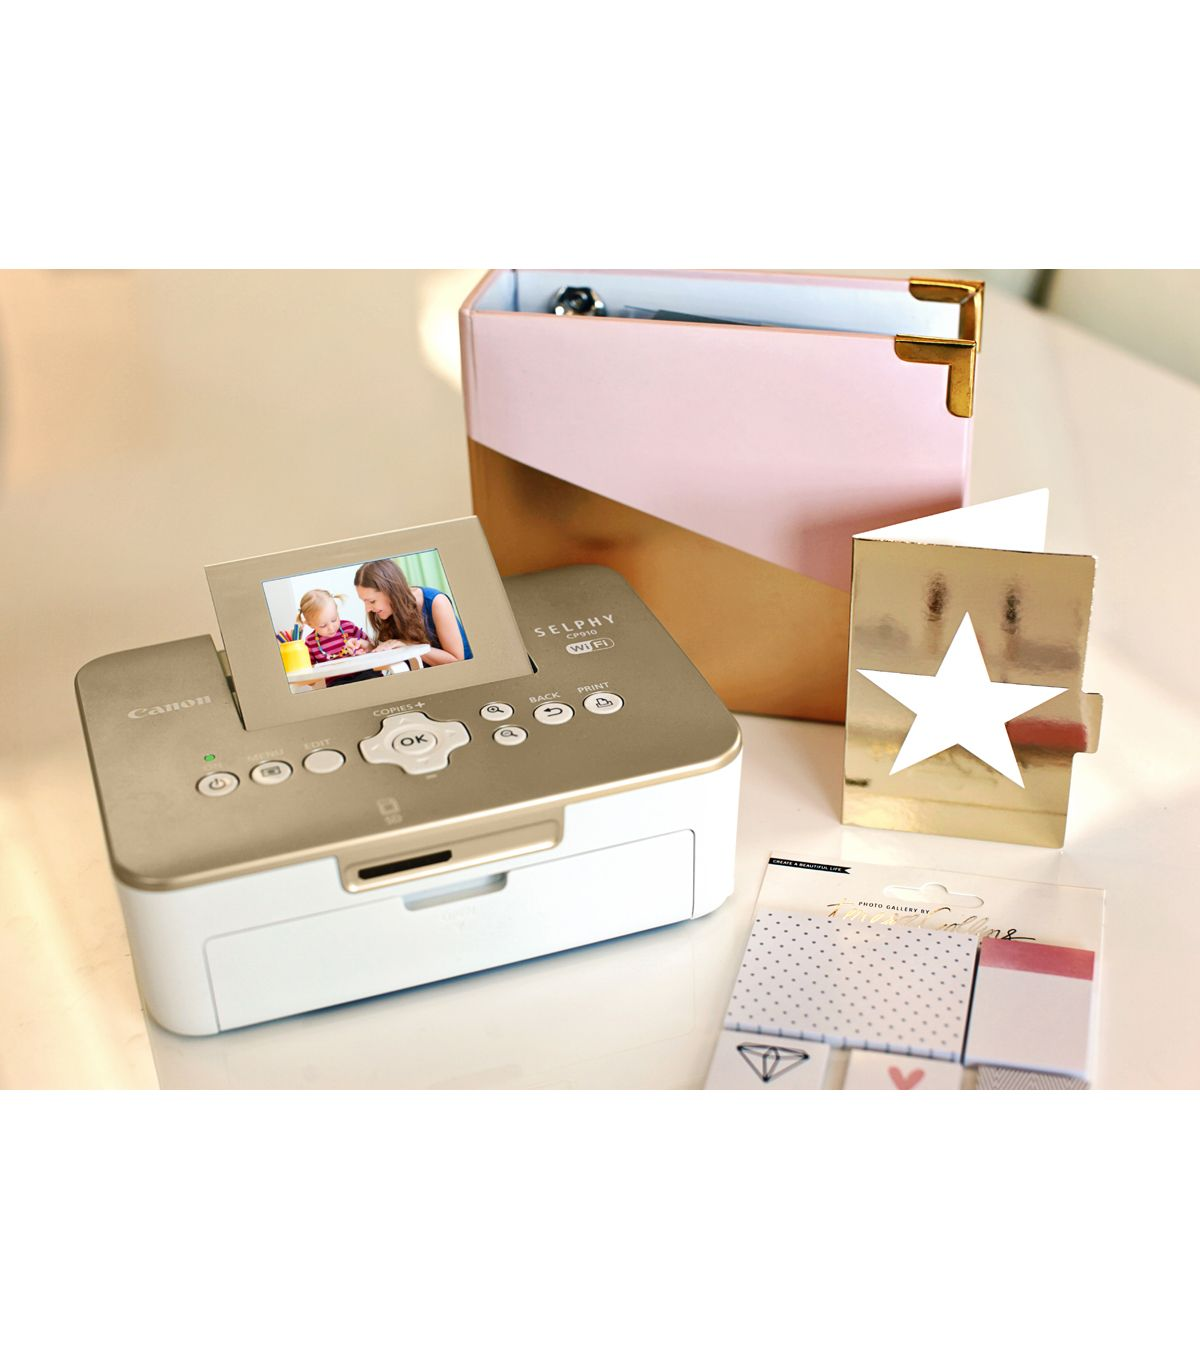 Canon Selphy Cp910 Compact Photo Printernull New Hobby Photo